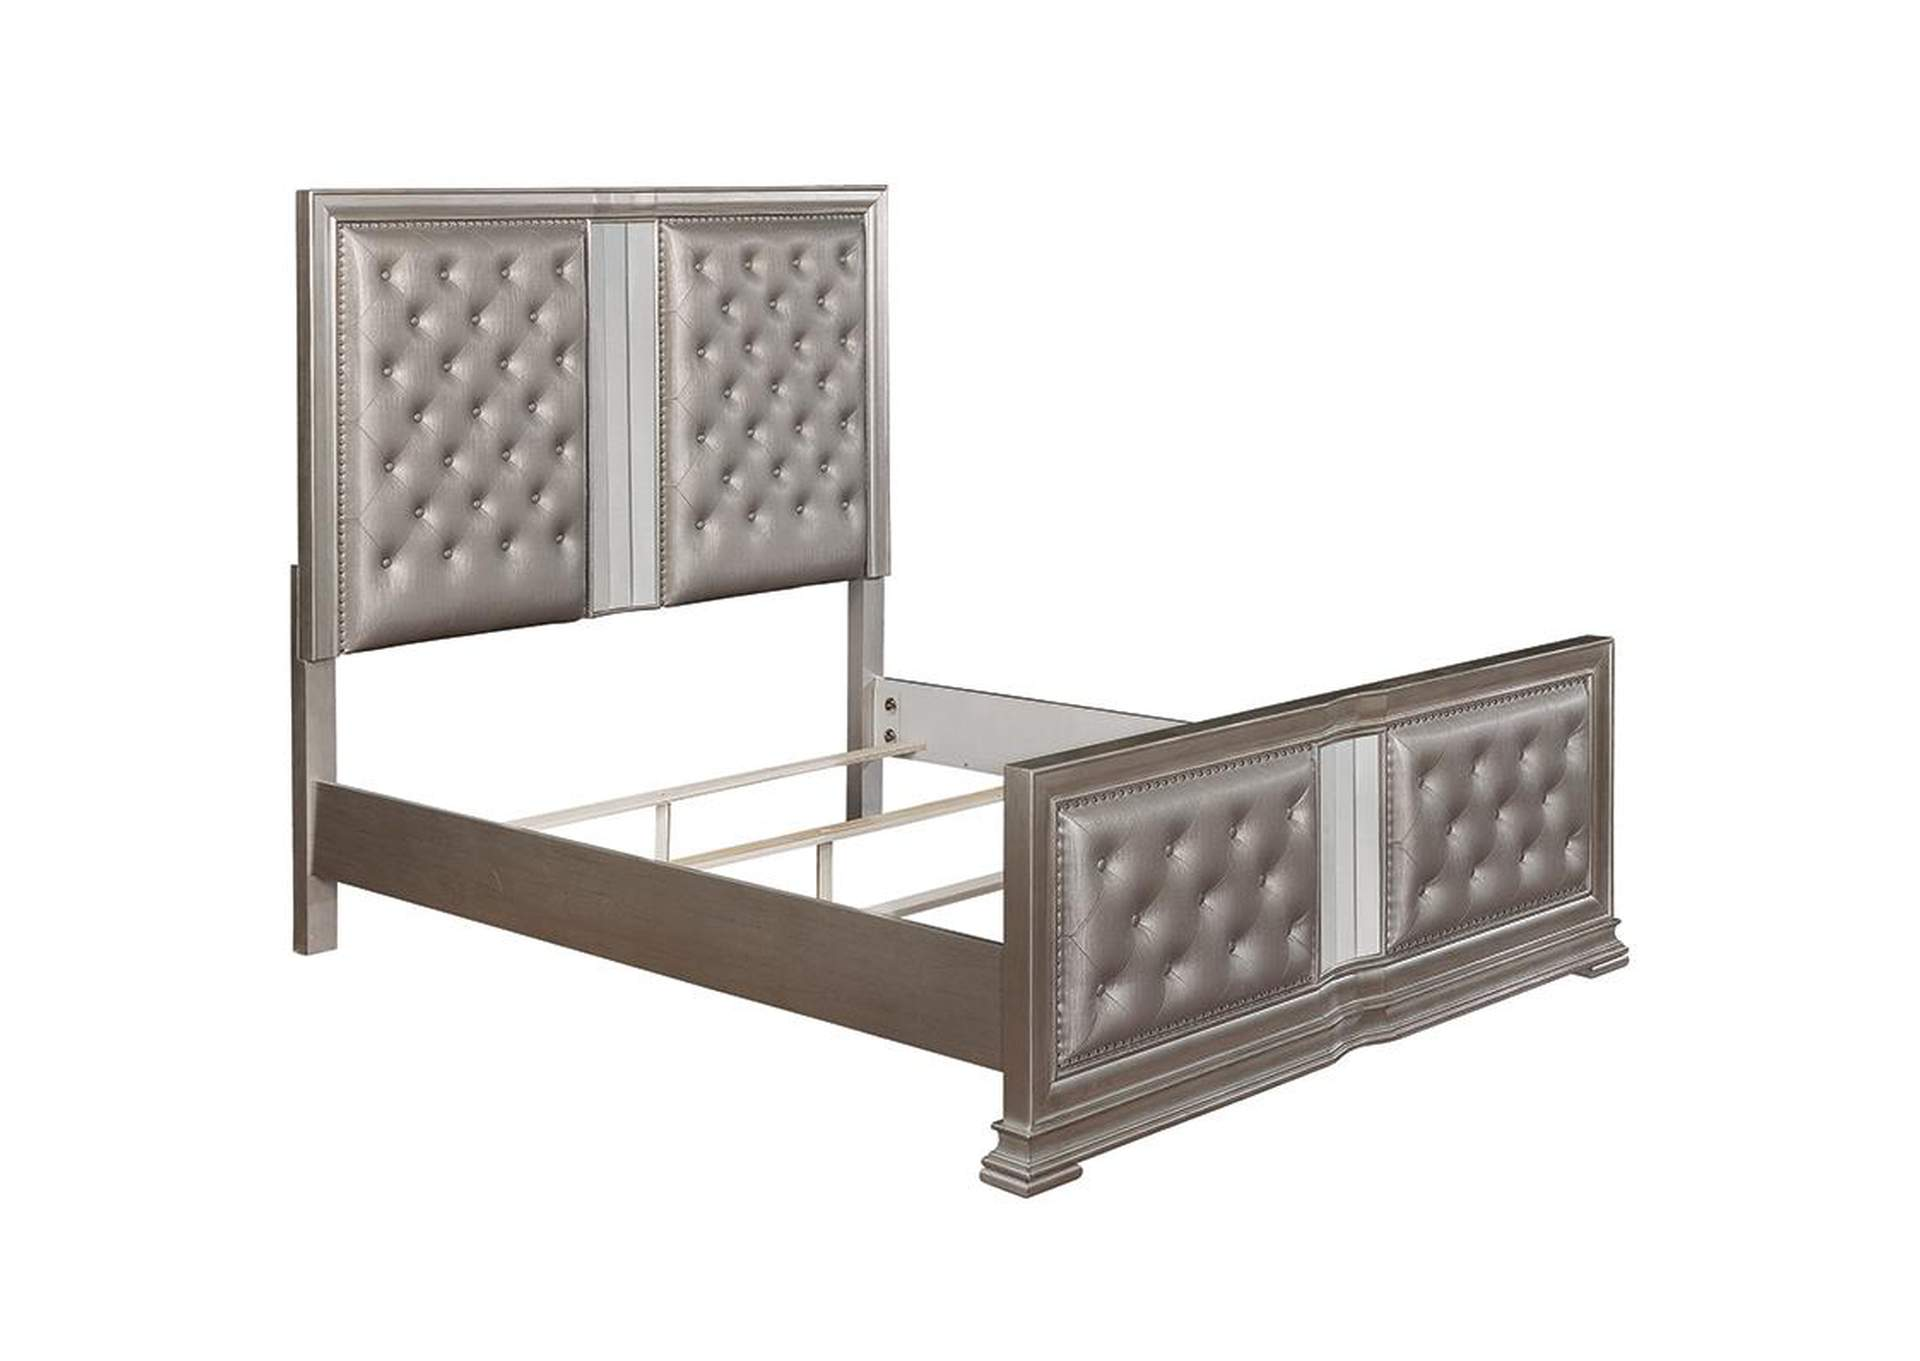 Adele Metallic Upholstered Queen Panel Bed,Coaster Furniture